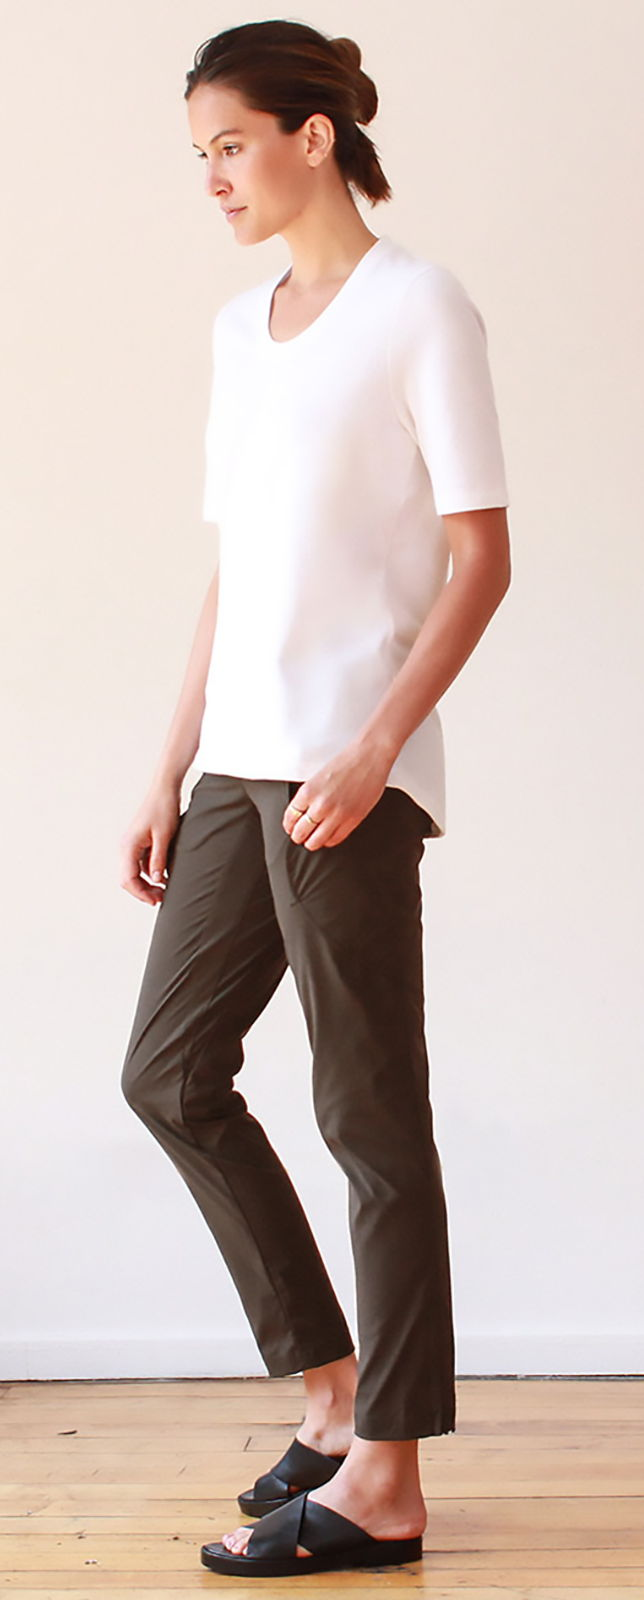 RESILIENCE – INDIA INSPIRED VOYAGER PANT COBBLESTONE